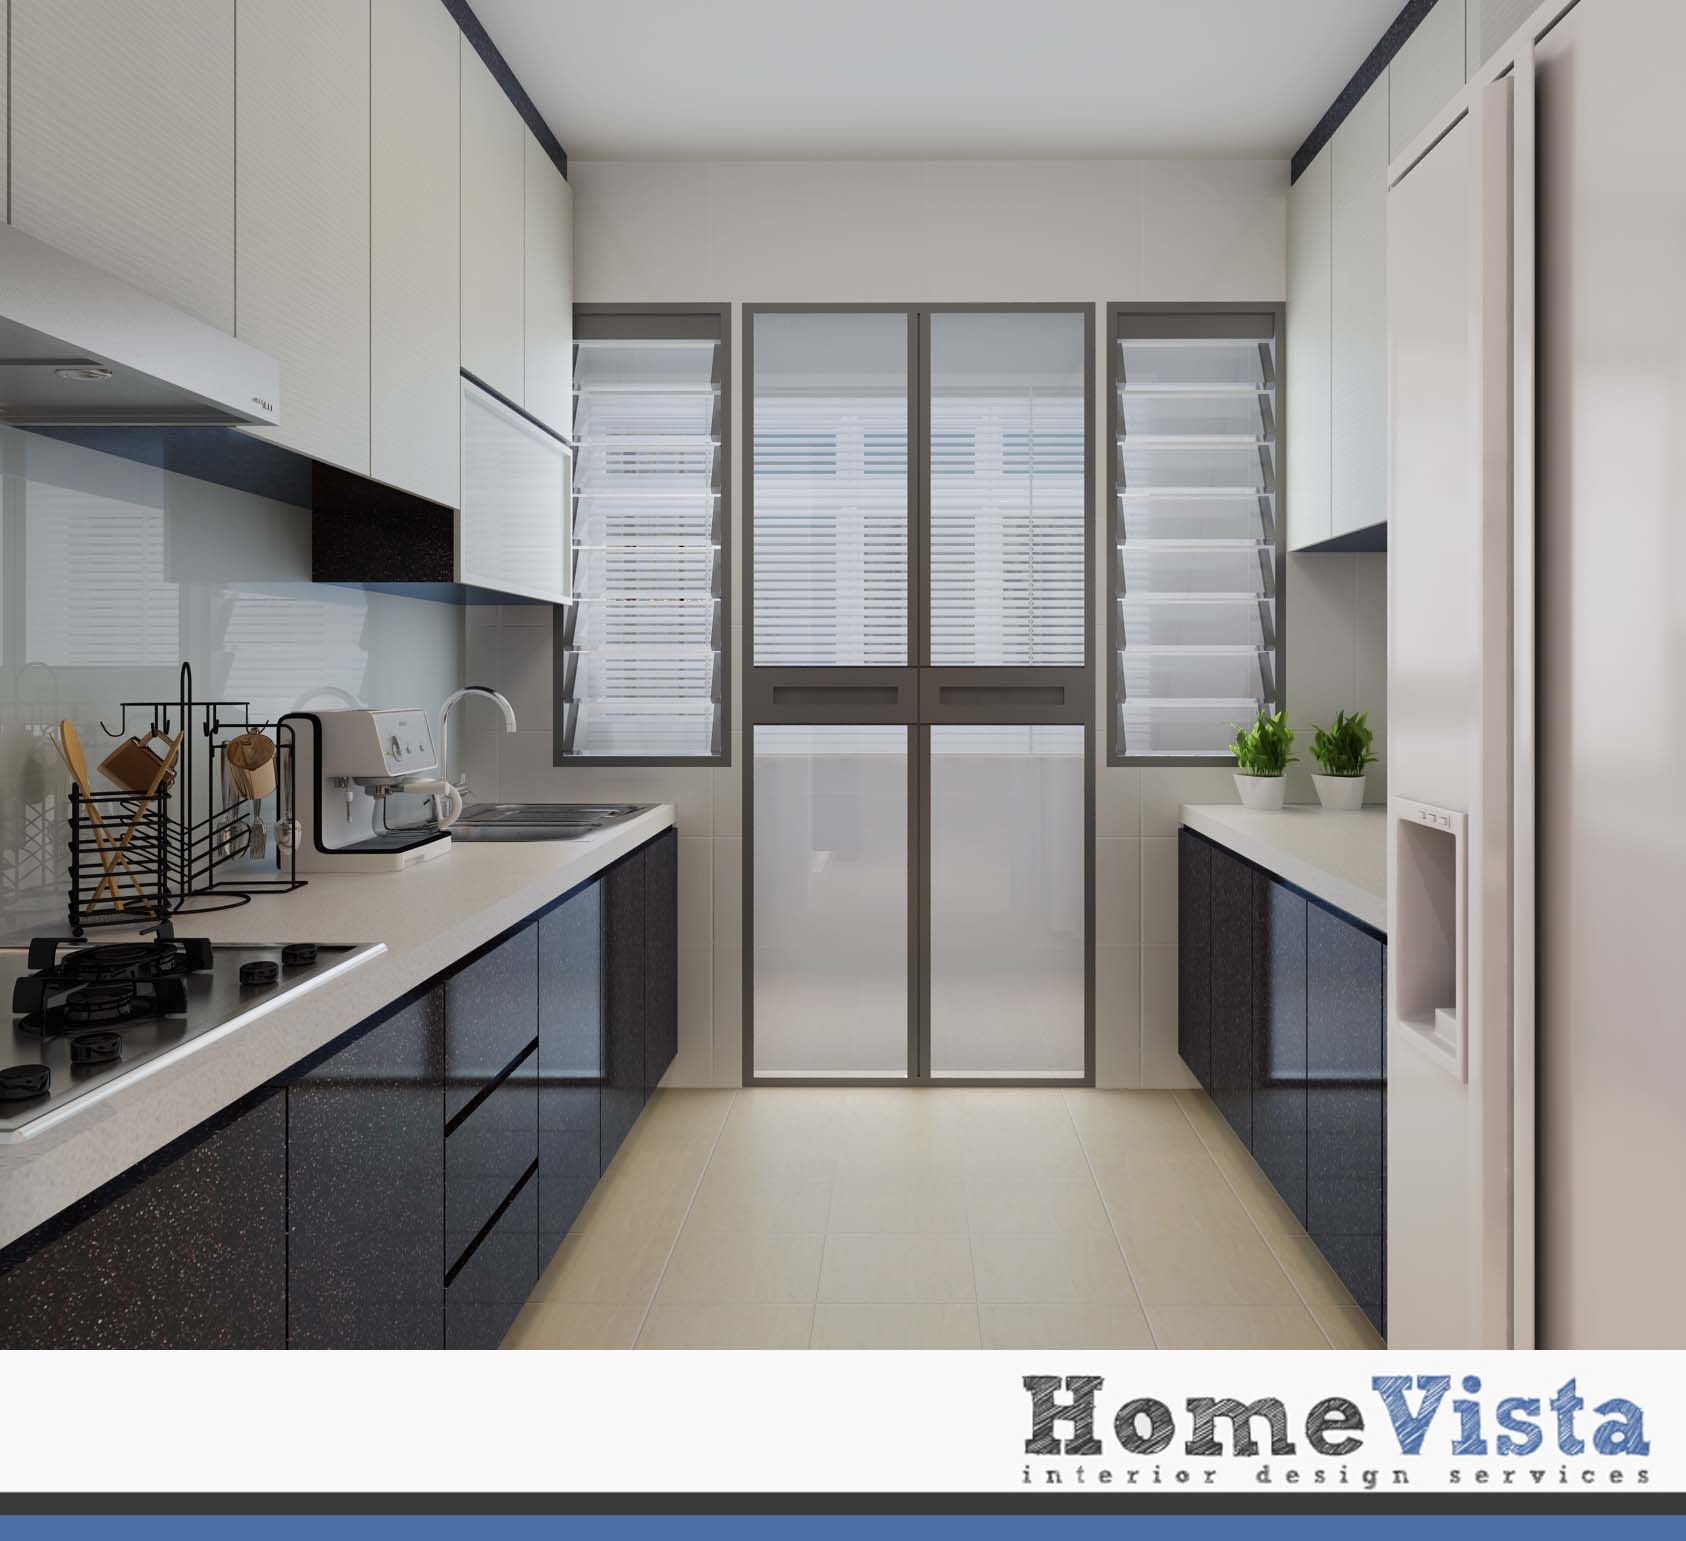 Kitchen Room Interior Design: 4 Room BTO - Yishun HDB BTO - HomeVista